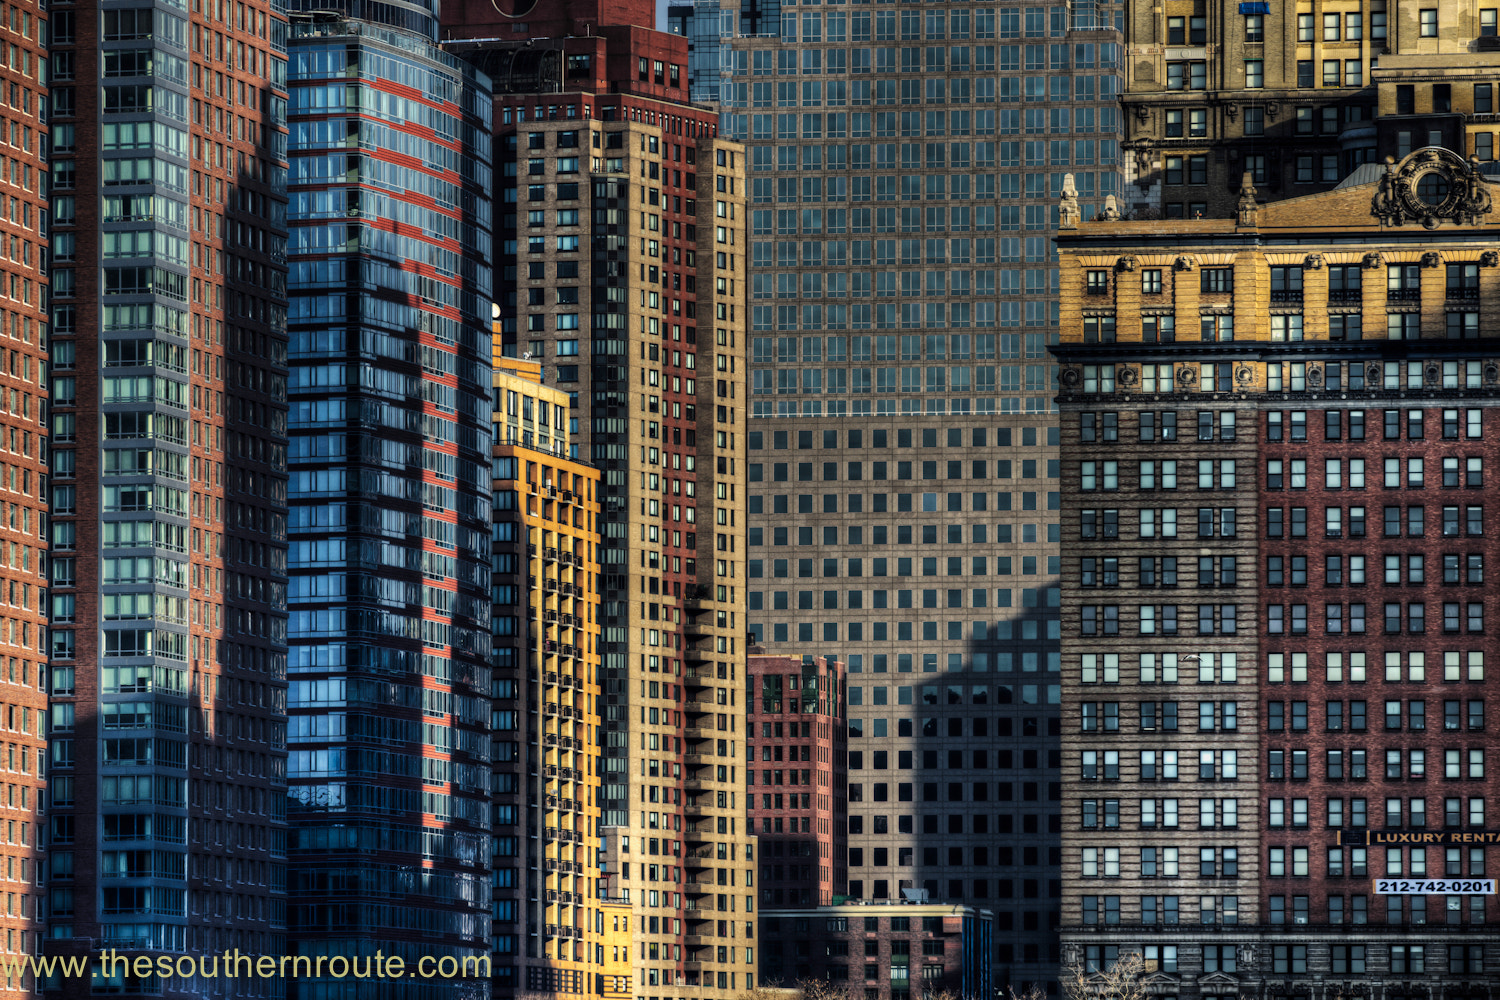 Photograph Made in New York by regis boileau on 500px